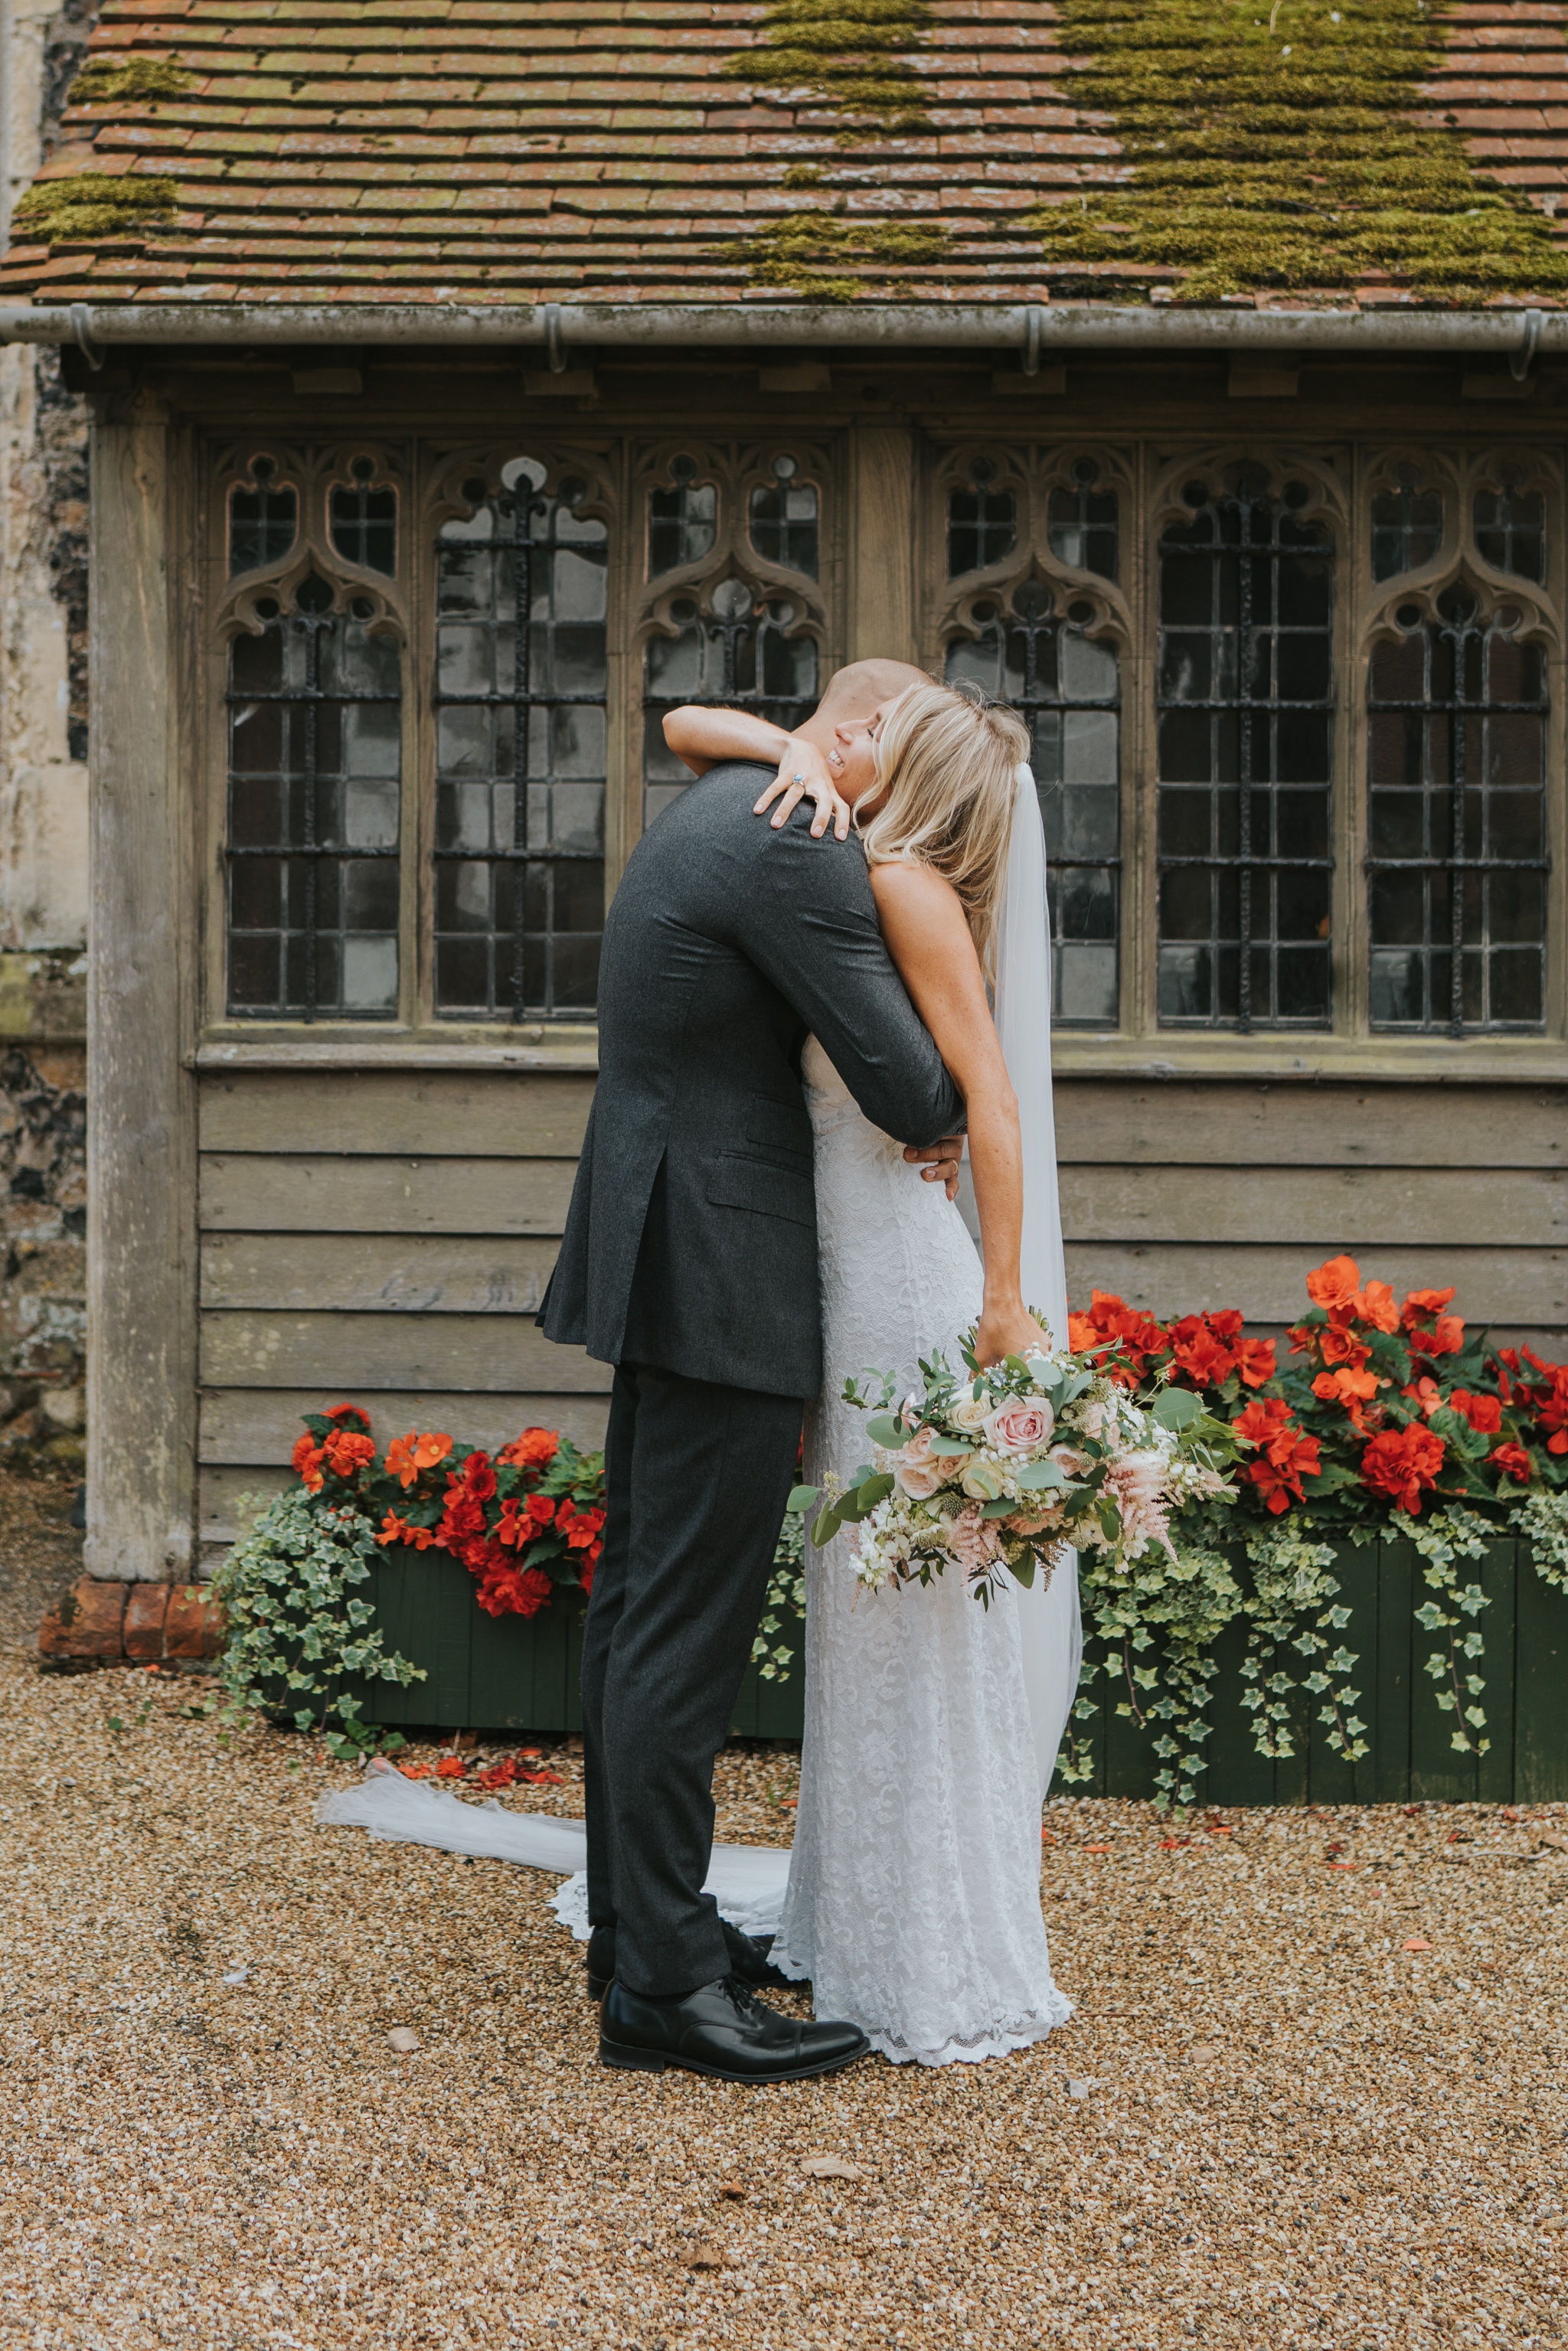 intimate-english-church-wedding-sarah-alex-colchester-essex-grace-elizabeth-colchester-essex-alternative-wedding-lifestyle-photographer-essex-suffolk-norfolk-devon (63 of 92).jpg